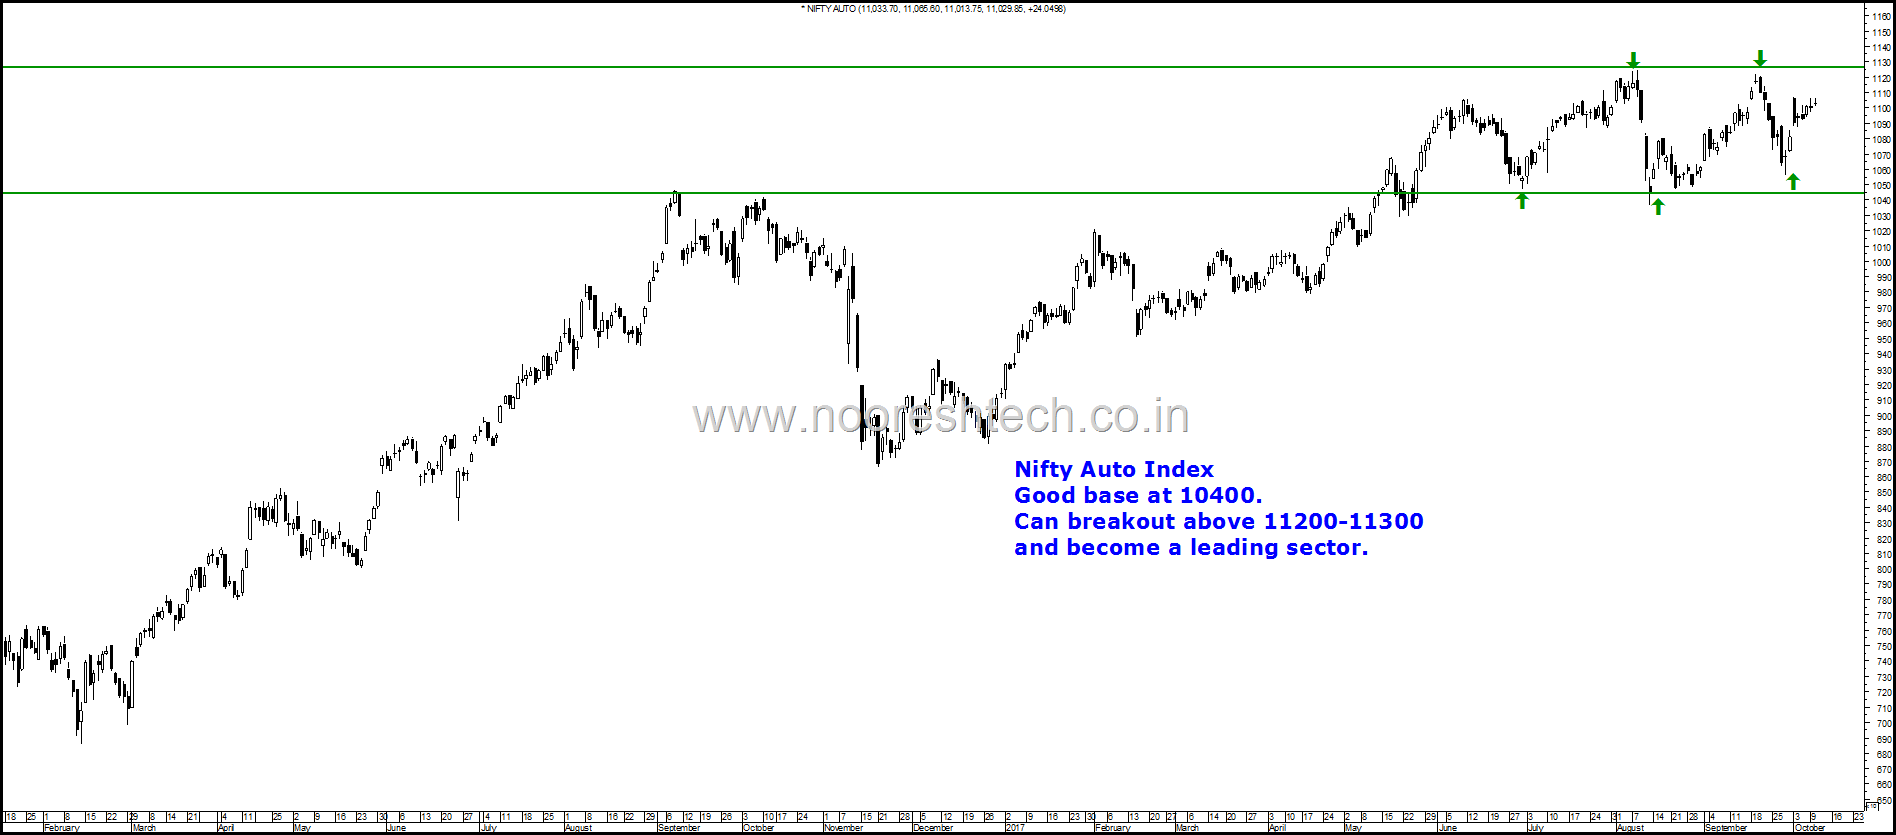 Nifty Auto Index Blog